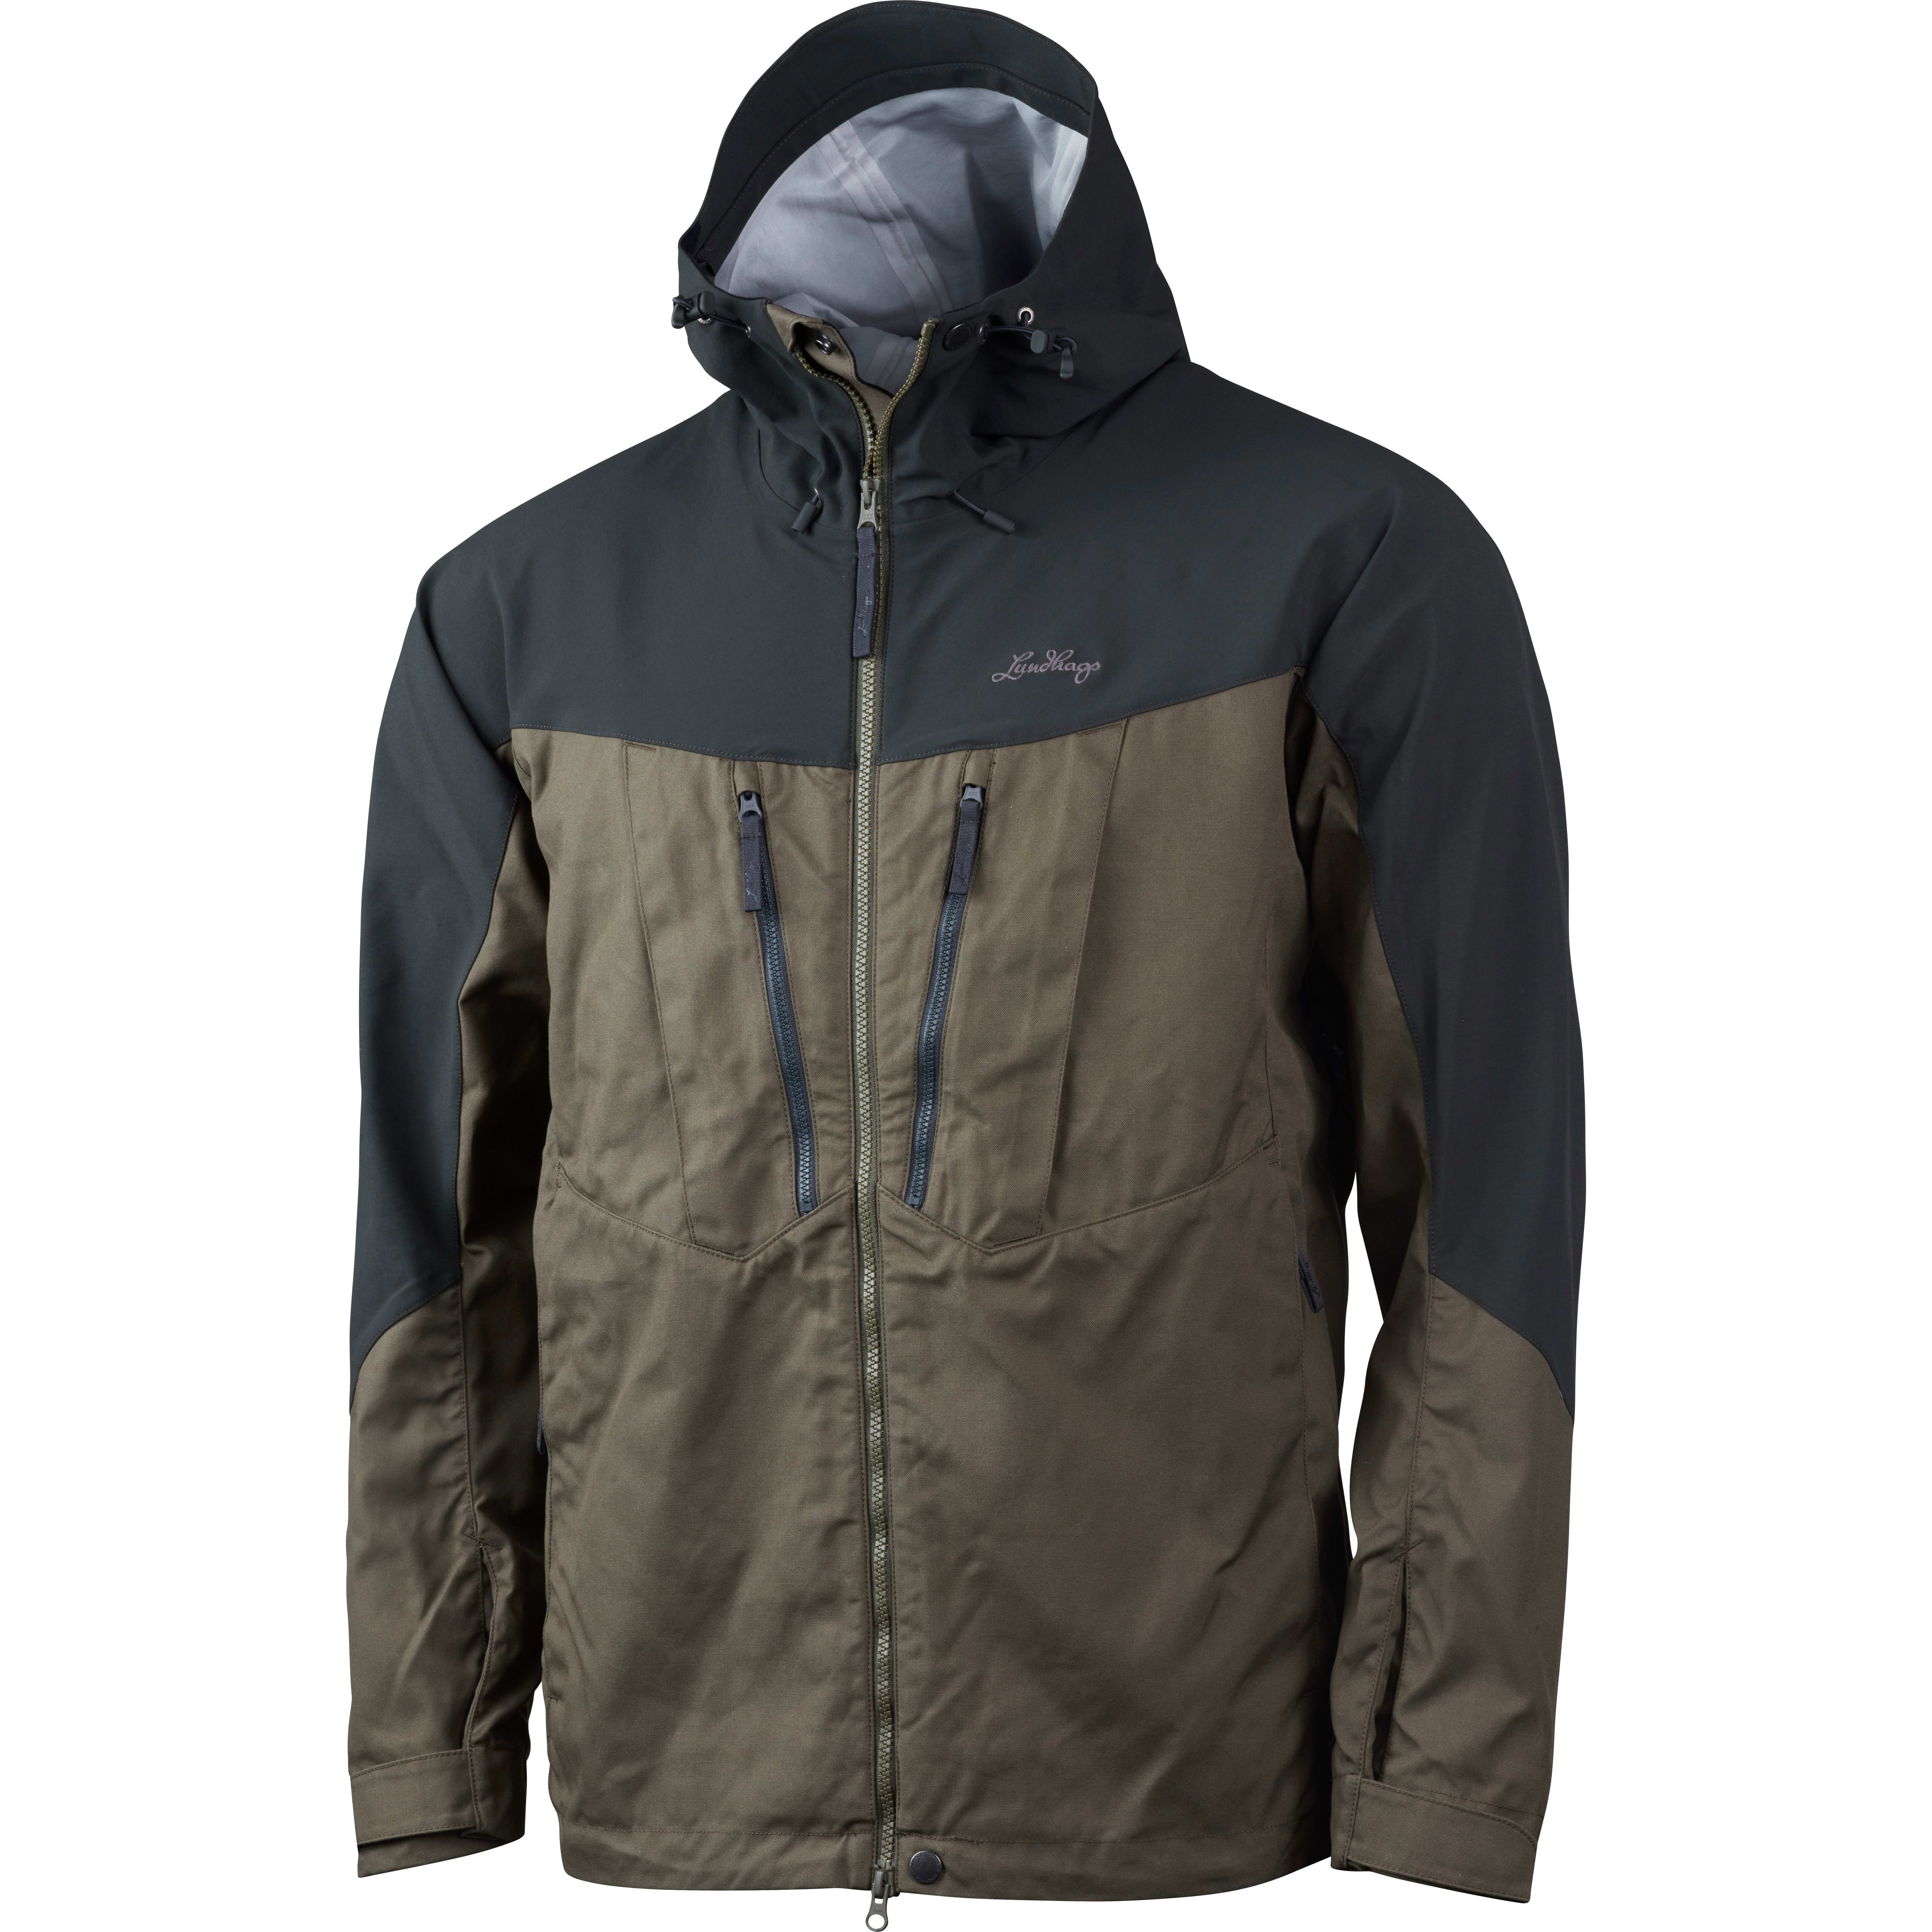 Buy Lundhags Makke Pro Men s Jacket from Outnorth 8178a910d9